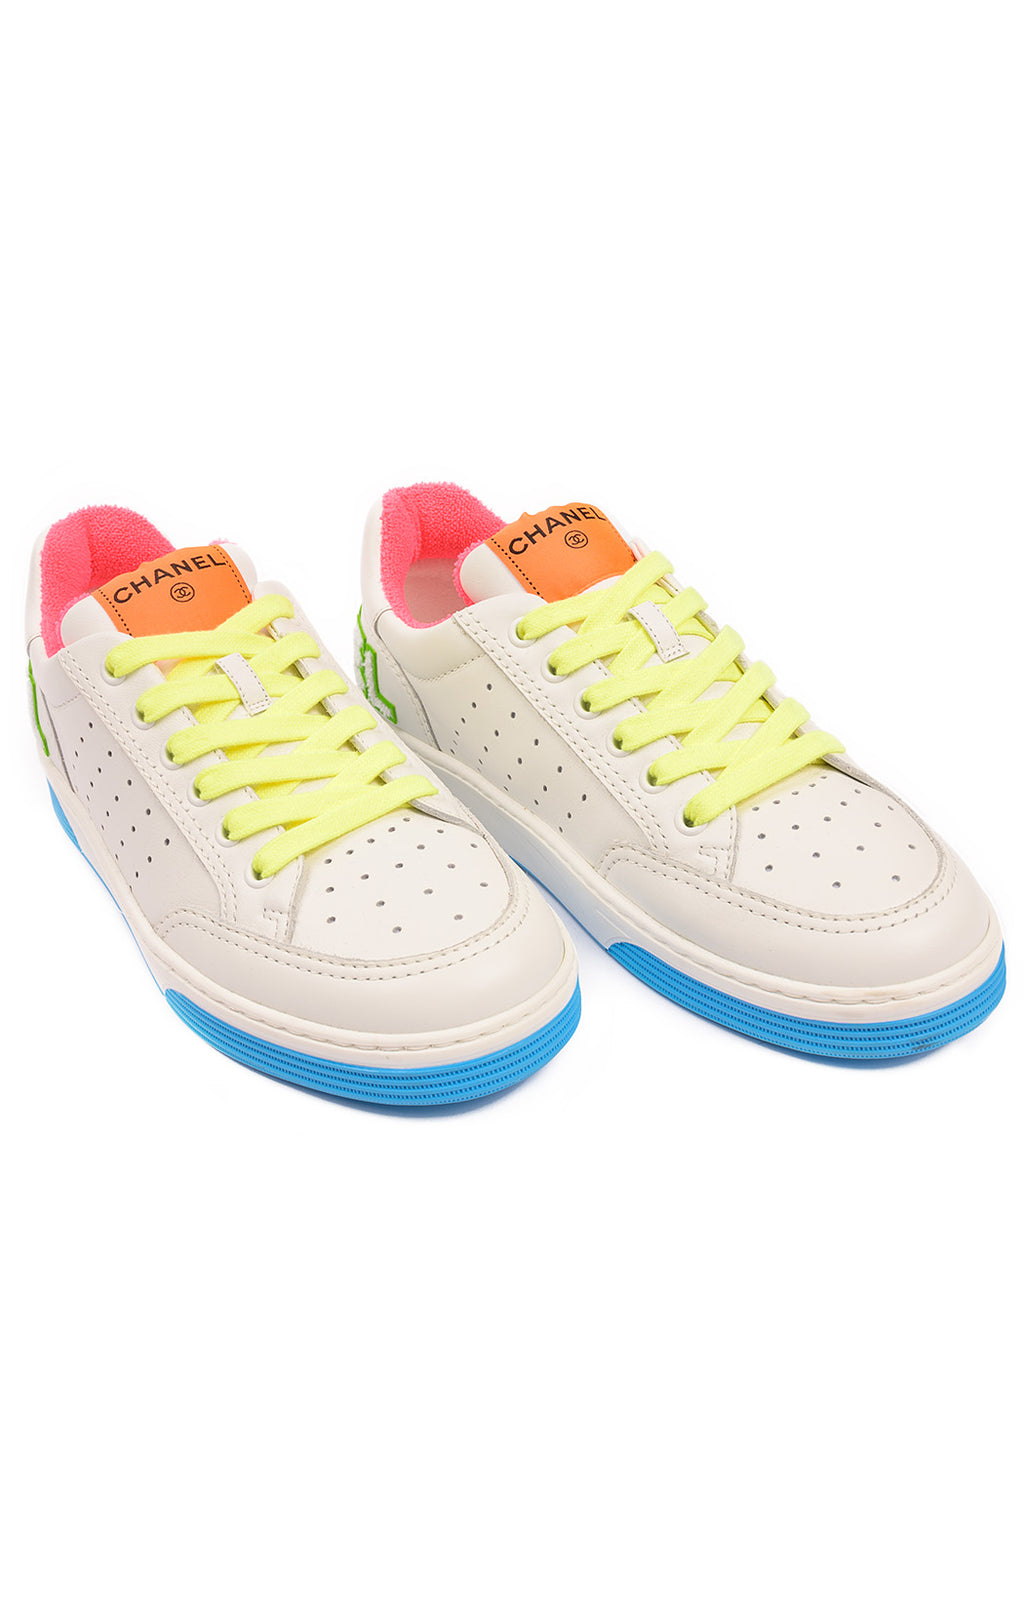 White leather lace up tennis shoe with yellow laces, orange pink green and blue accent colors